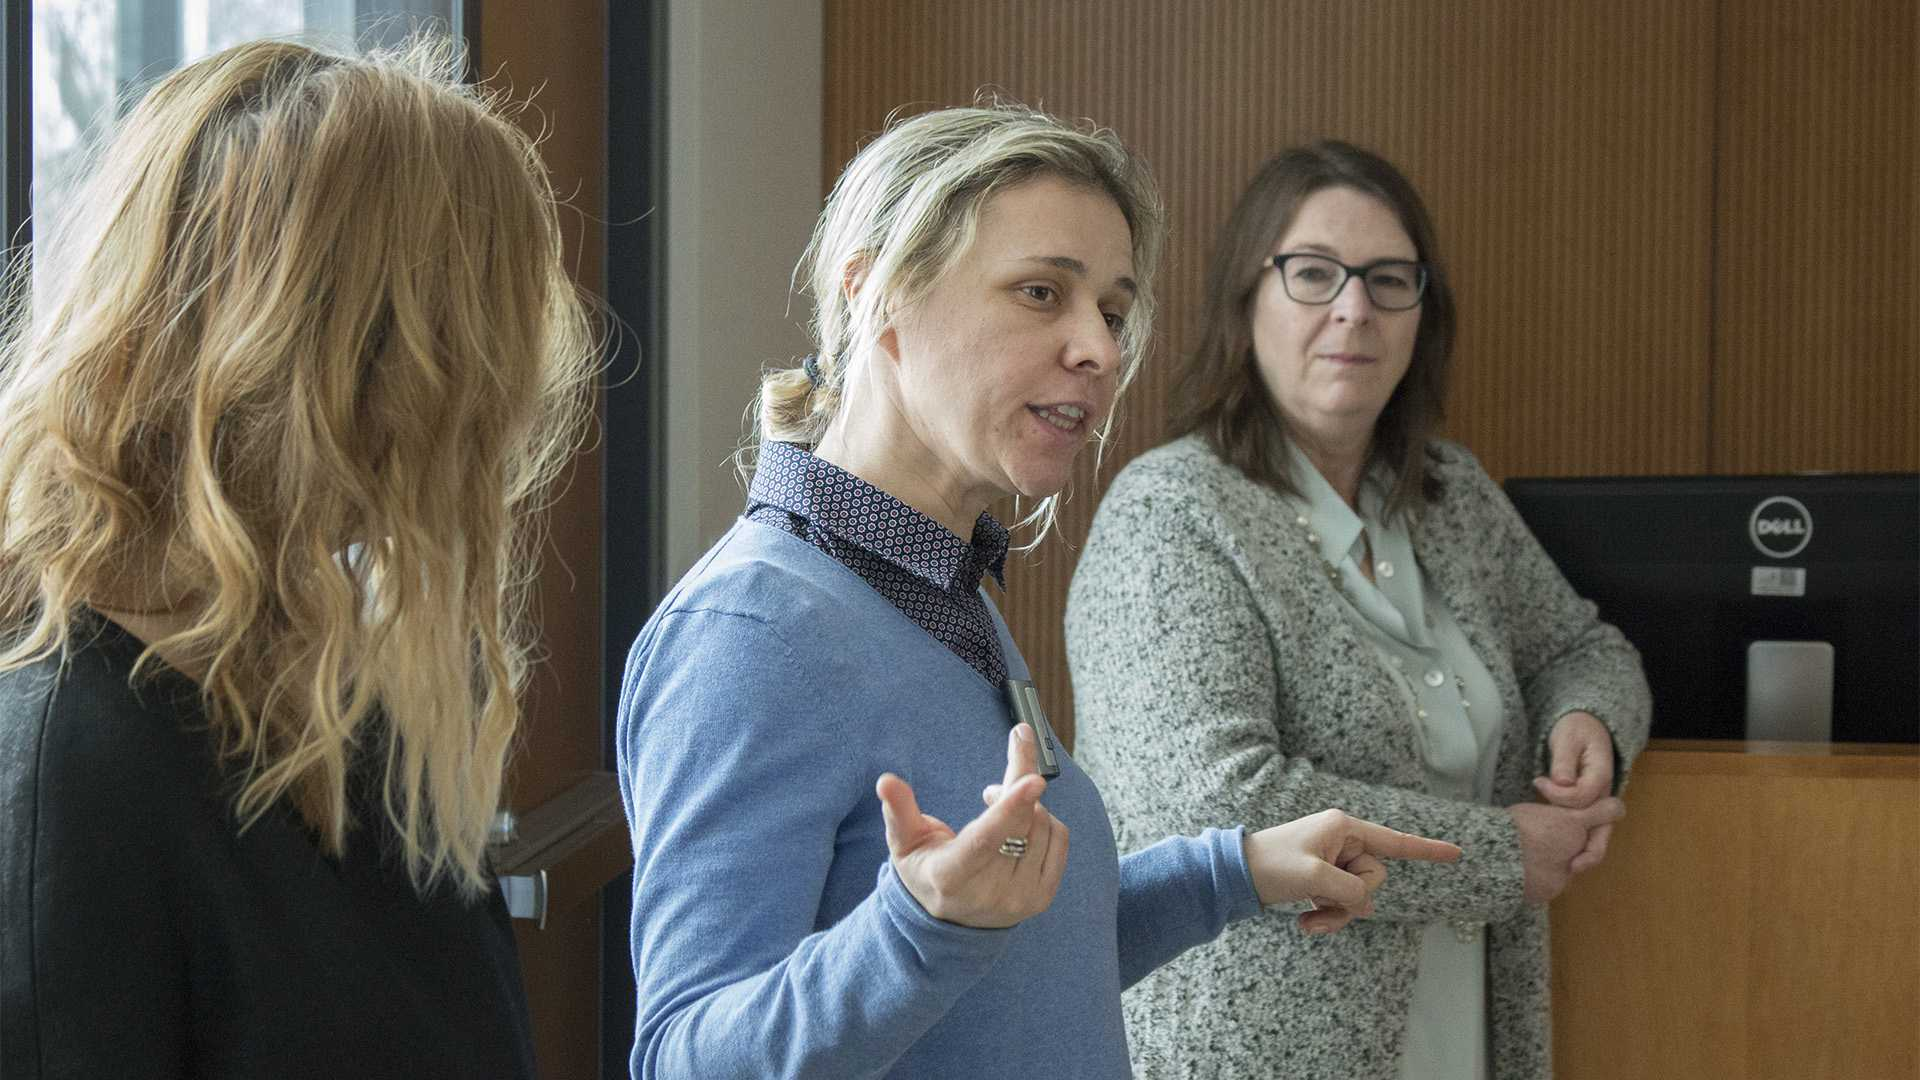 Photographer Majda Turkic (center) answers a question during a presentation in the College of Public Health on Wednesday, Jan. 31, 2018. The college hosted a workshop on cyberbullying and social media use internationally. (Shivansh Ahuja/The Daily Iowan)